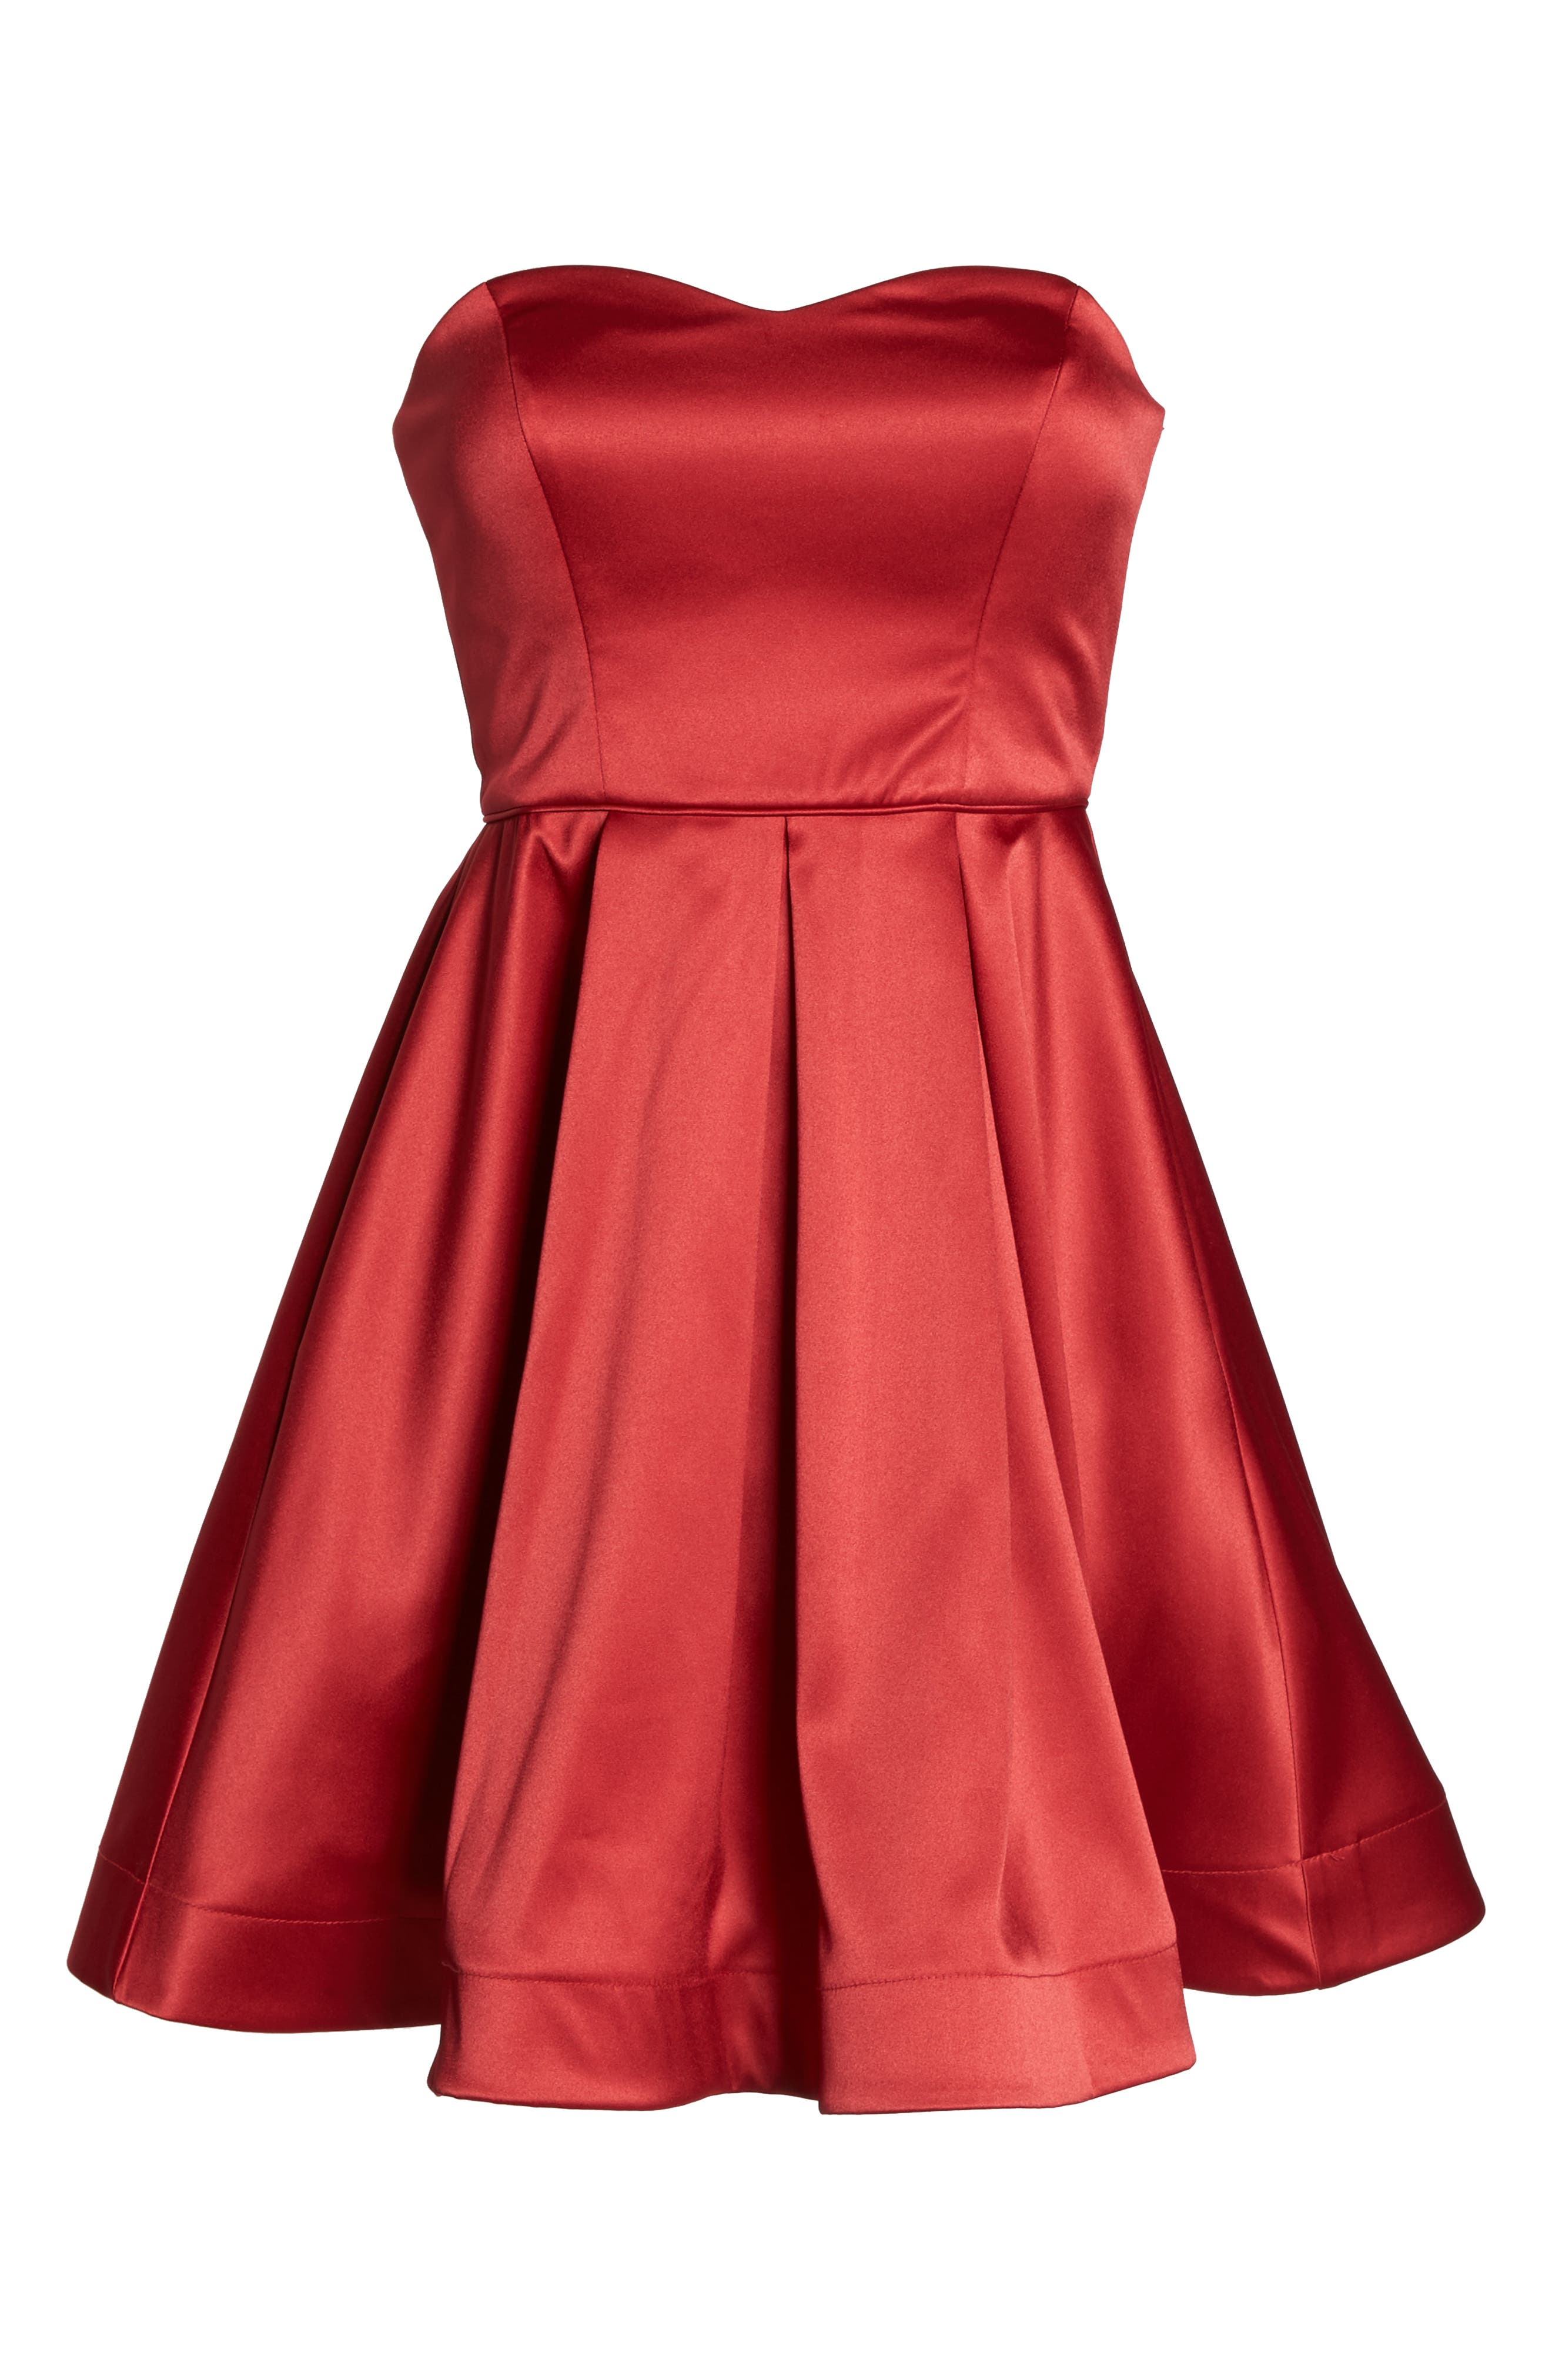 Satin Removable Strap Party Dress,                             Alternate thumbnail 8, color,                             RED